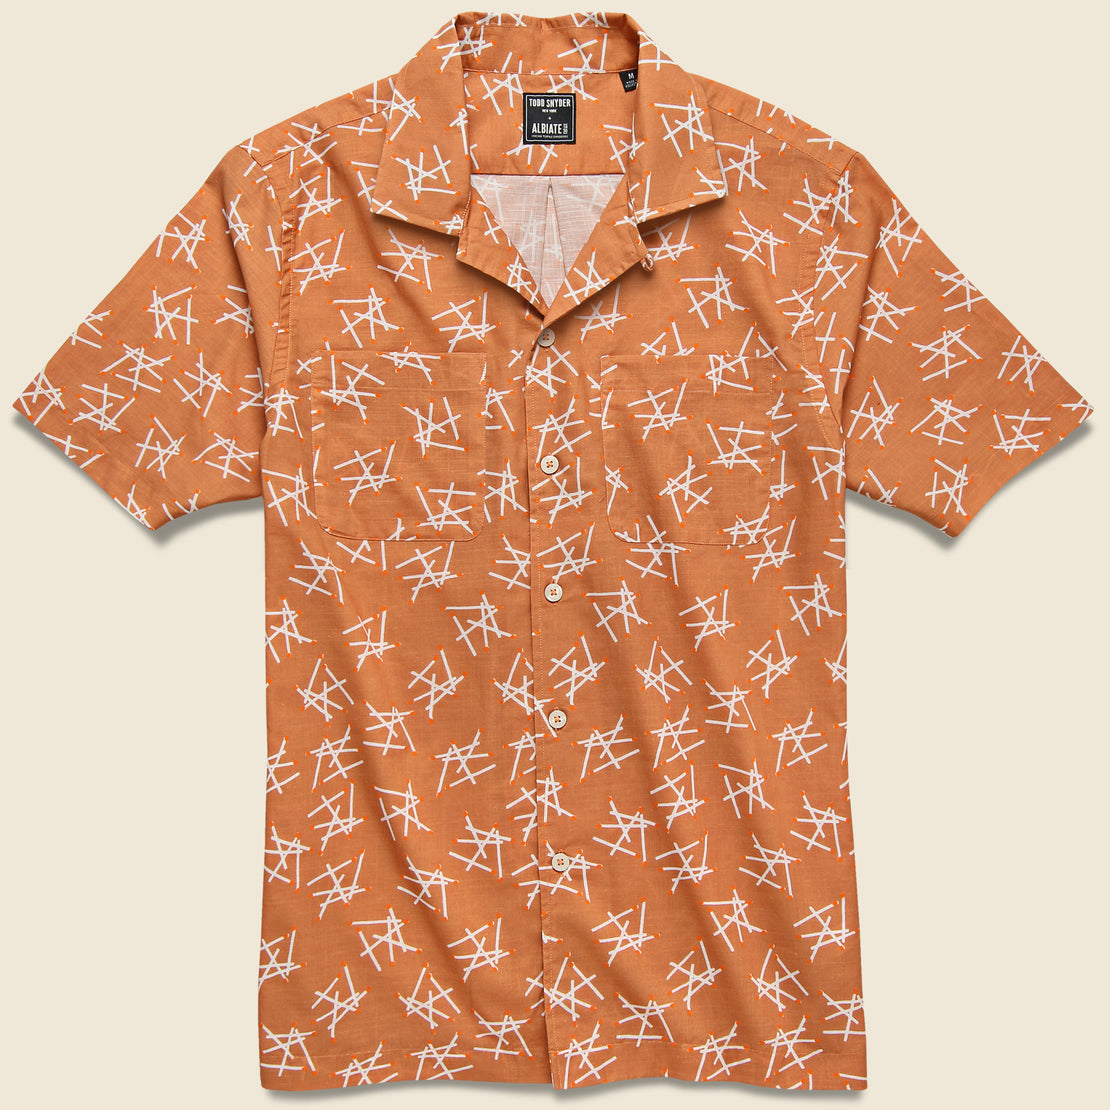 Todd Snyder Matchstick Camp Shirt - Peach